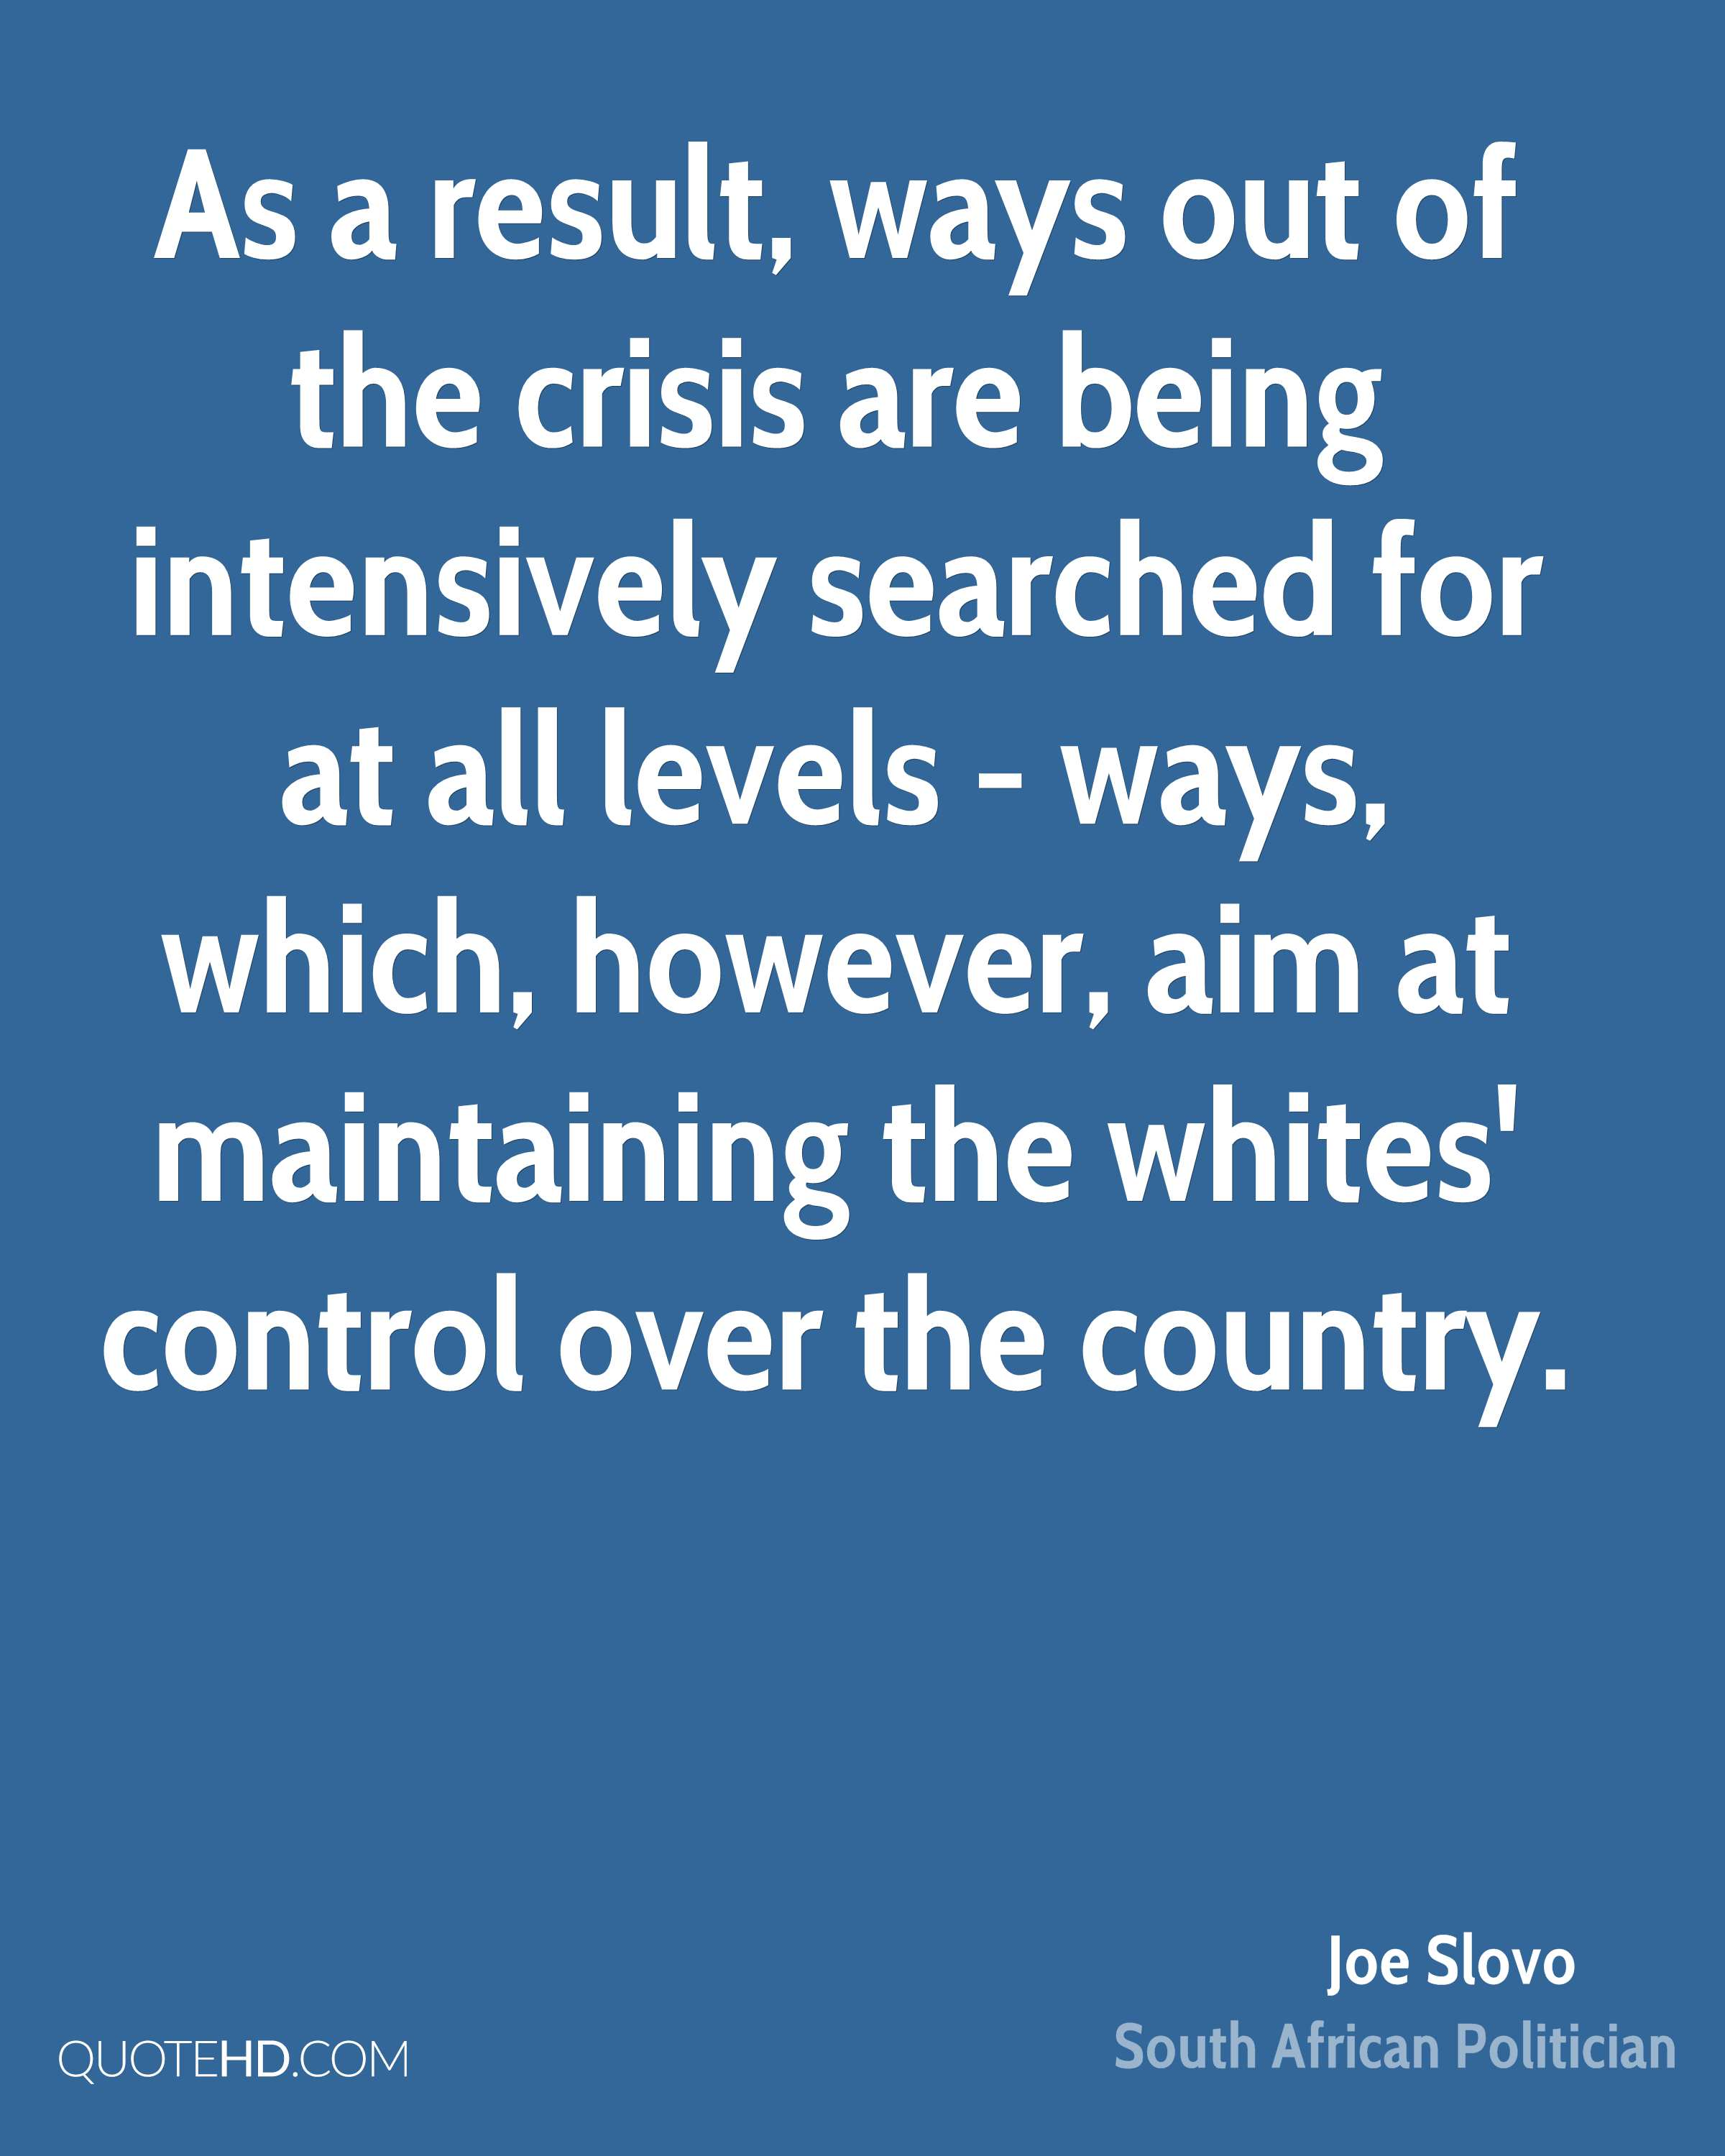 As a result, ways out of the crisis are being intensively searched for at all levels - ways, which, however, aim at maintaining the whites' control over the country.